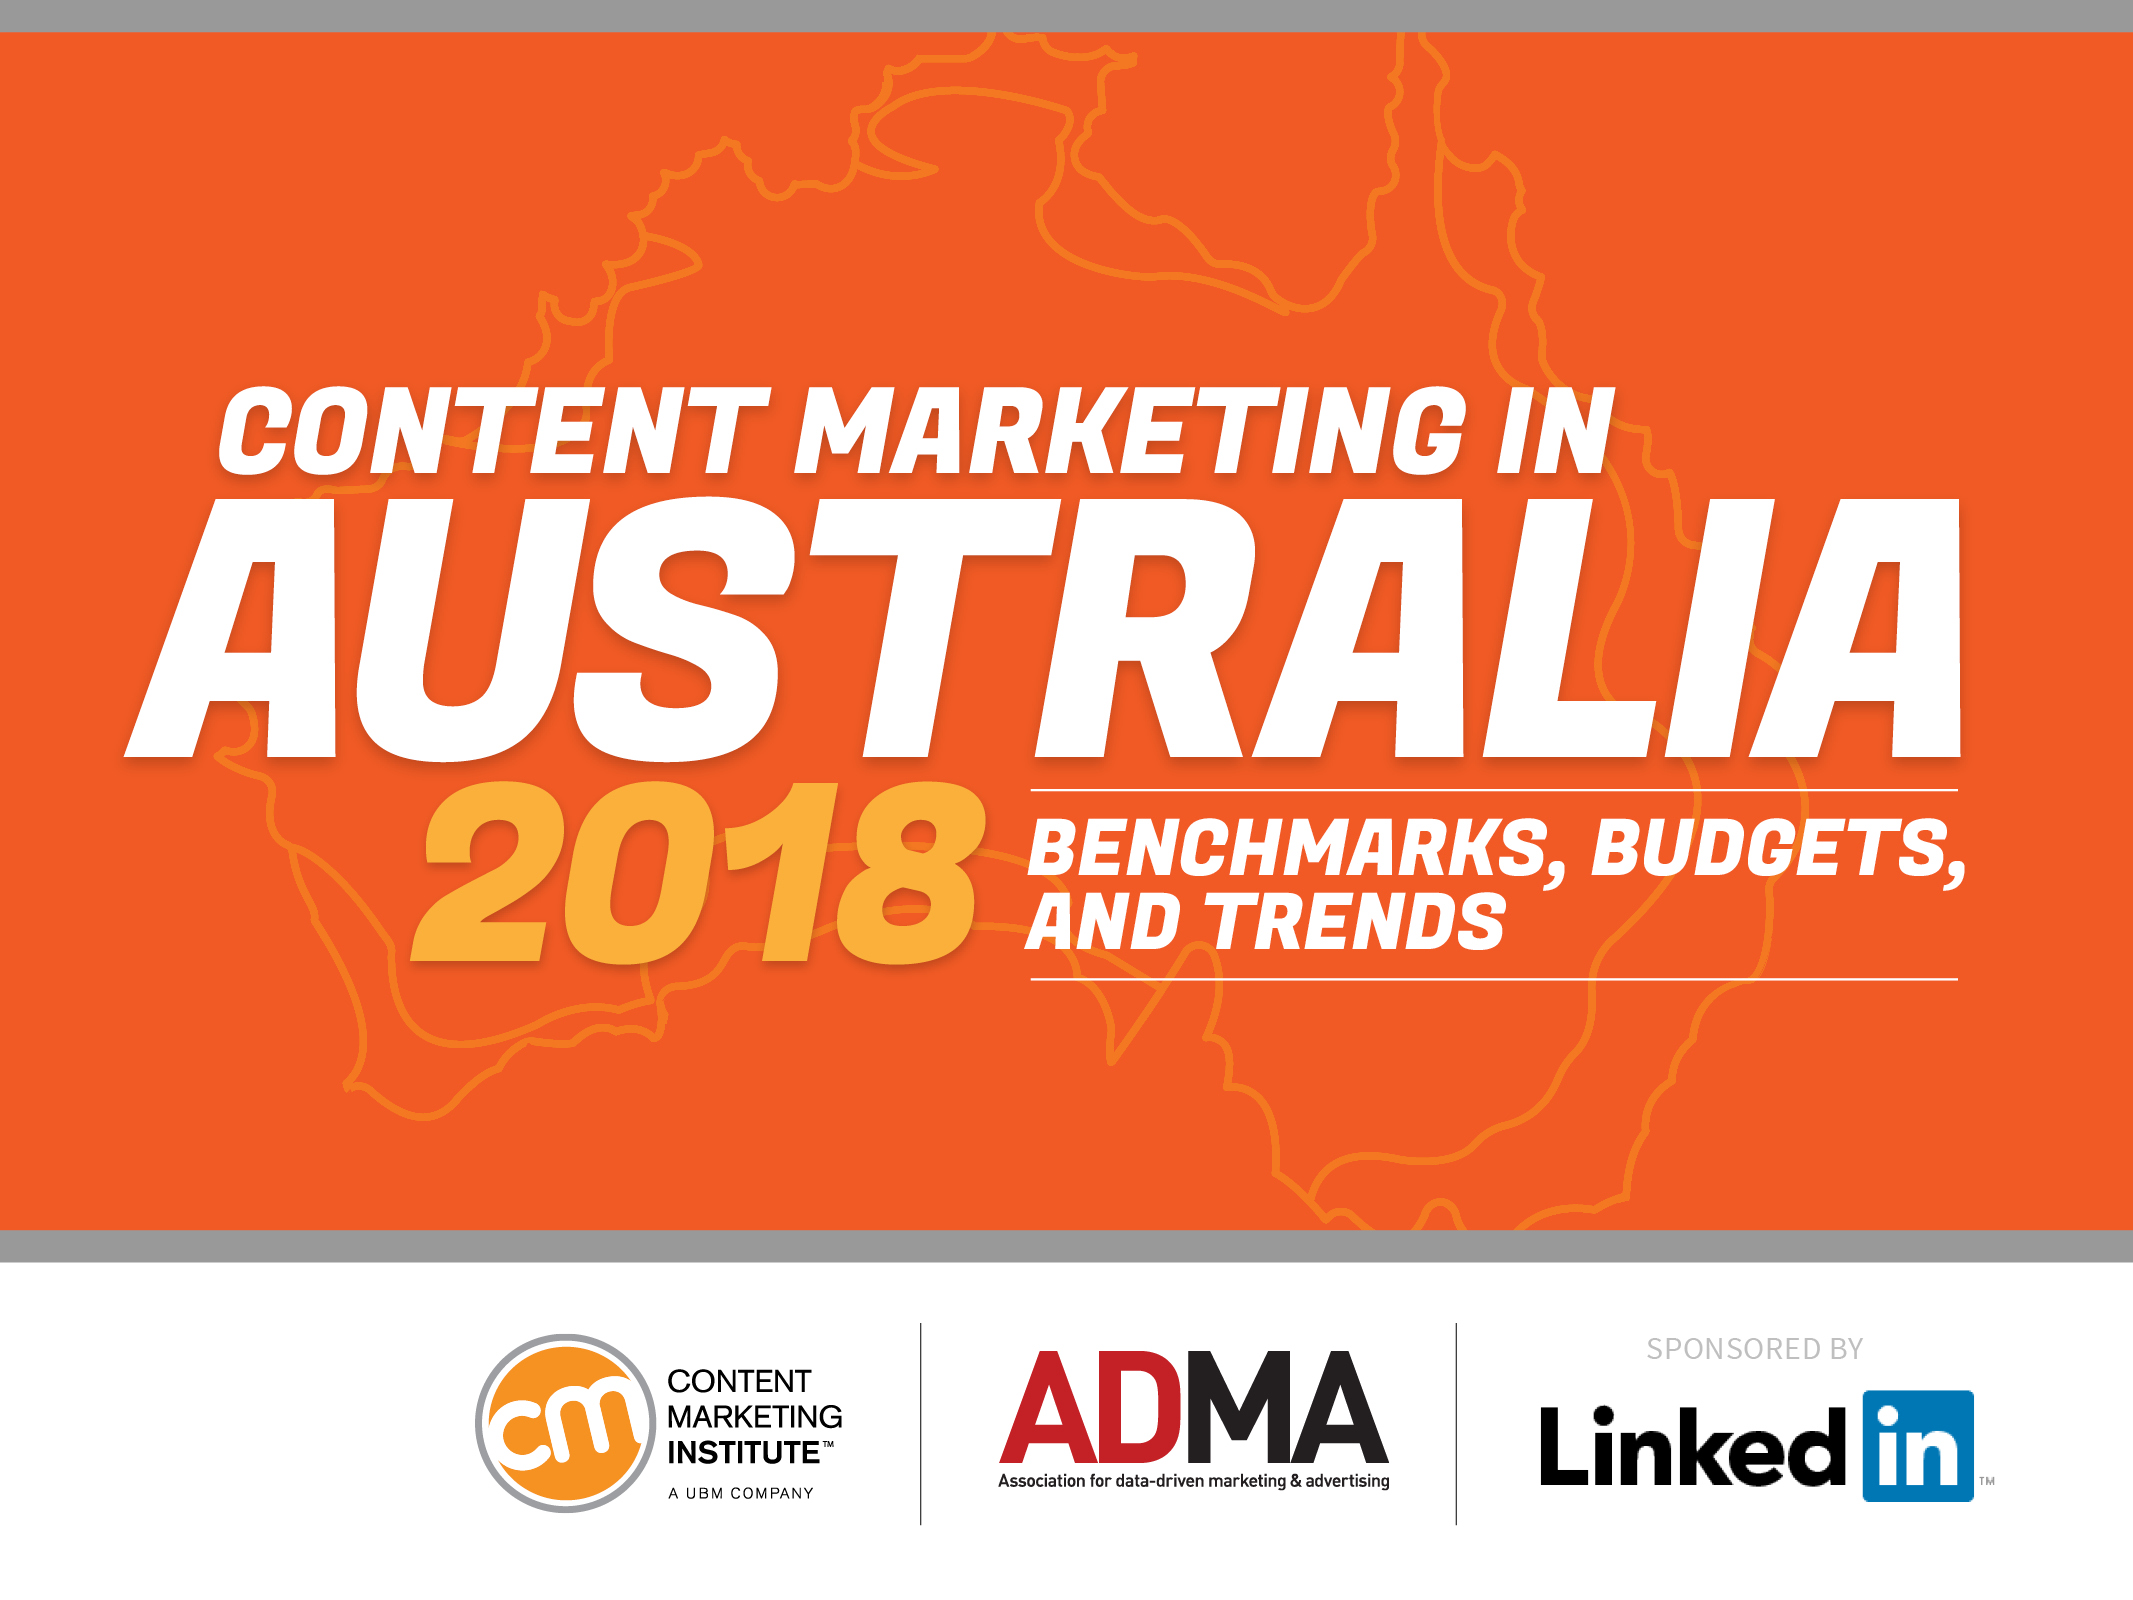 Content Marketing In Australia 2018: Benchmarks, Budgets, And Trends